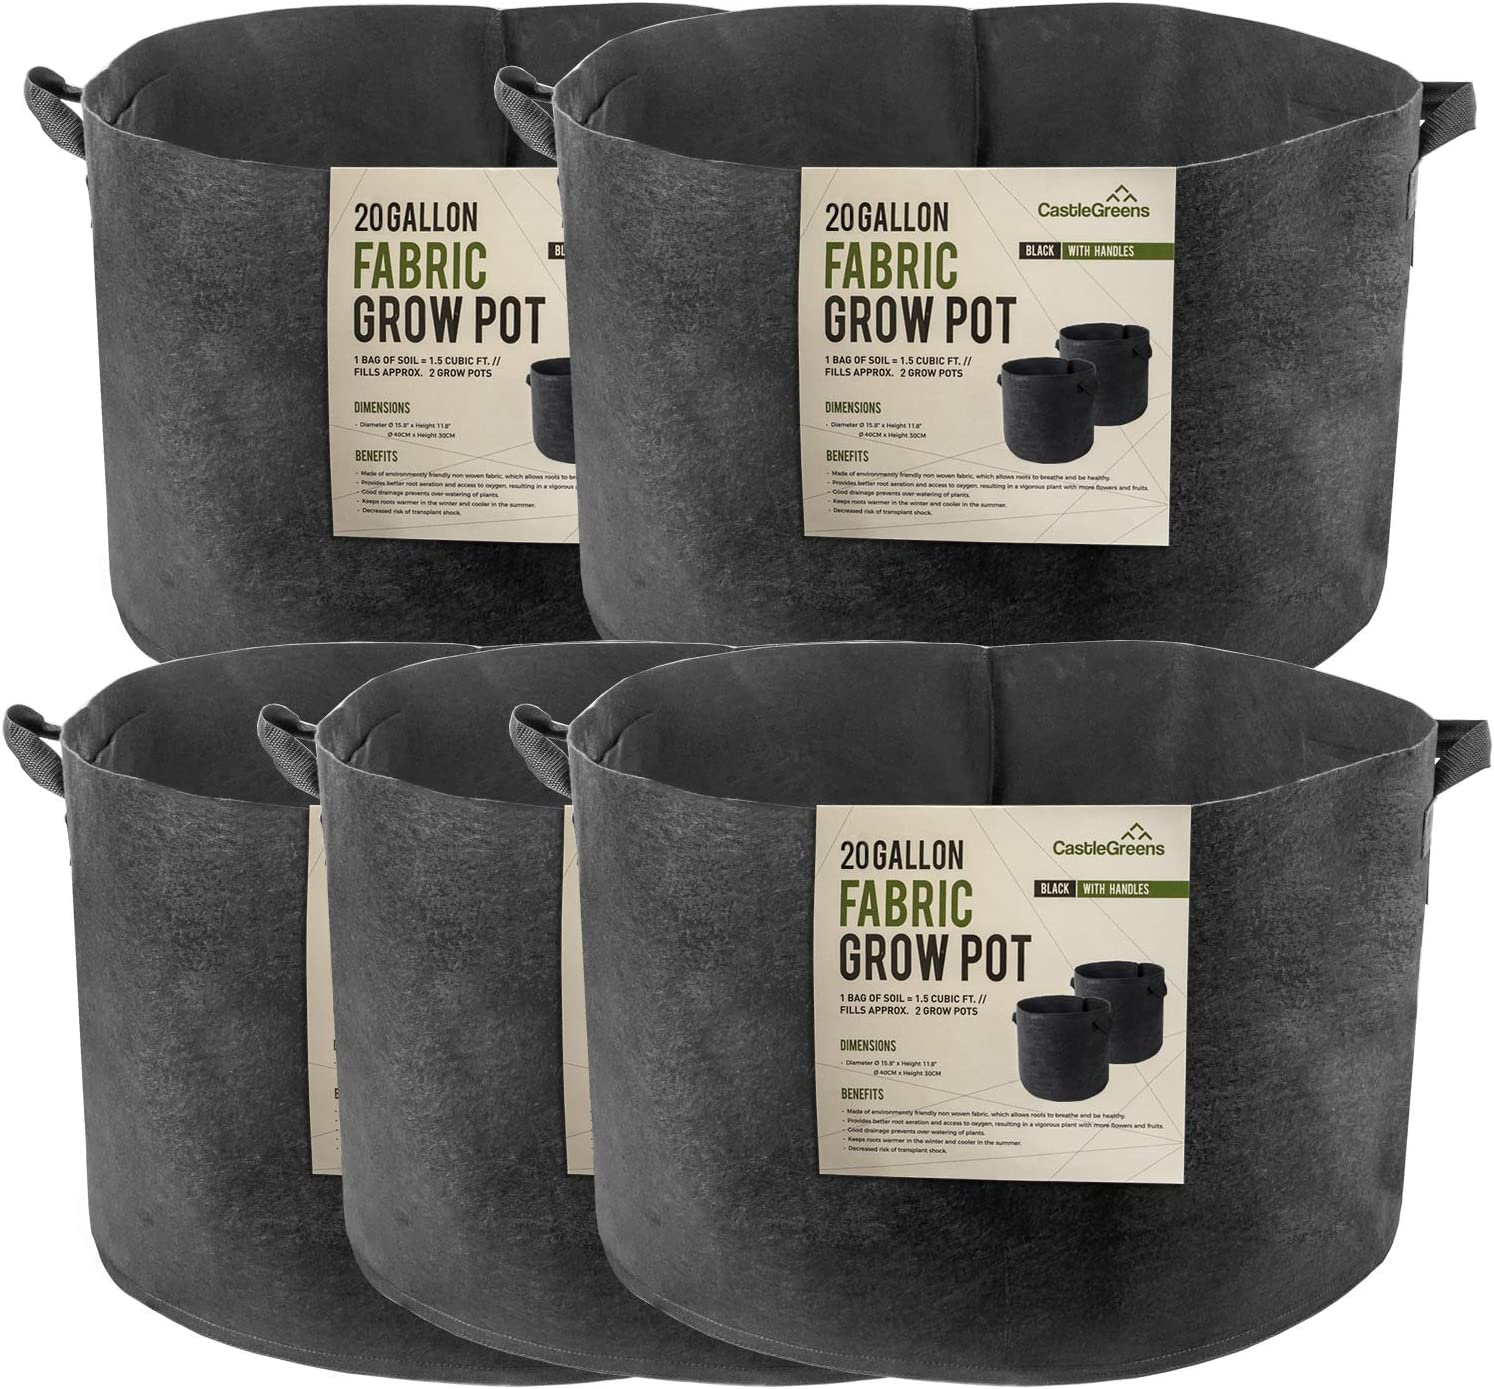 CastleGreens 20 Gallon Grow Bags, 5-Pack Thickened Non-Woven Fabric Pots with Durable Handles, Improved Garden Root-Controlling Container, Design for Vegetables, Fruits, Flowers, Easy to Move(Black)